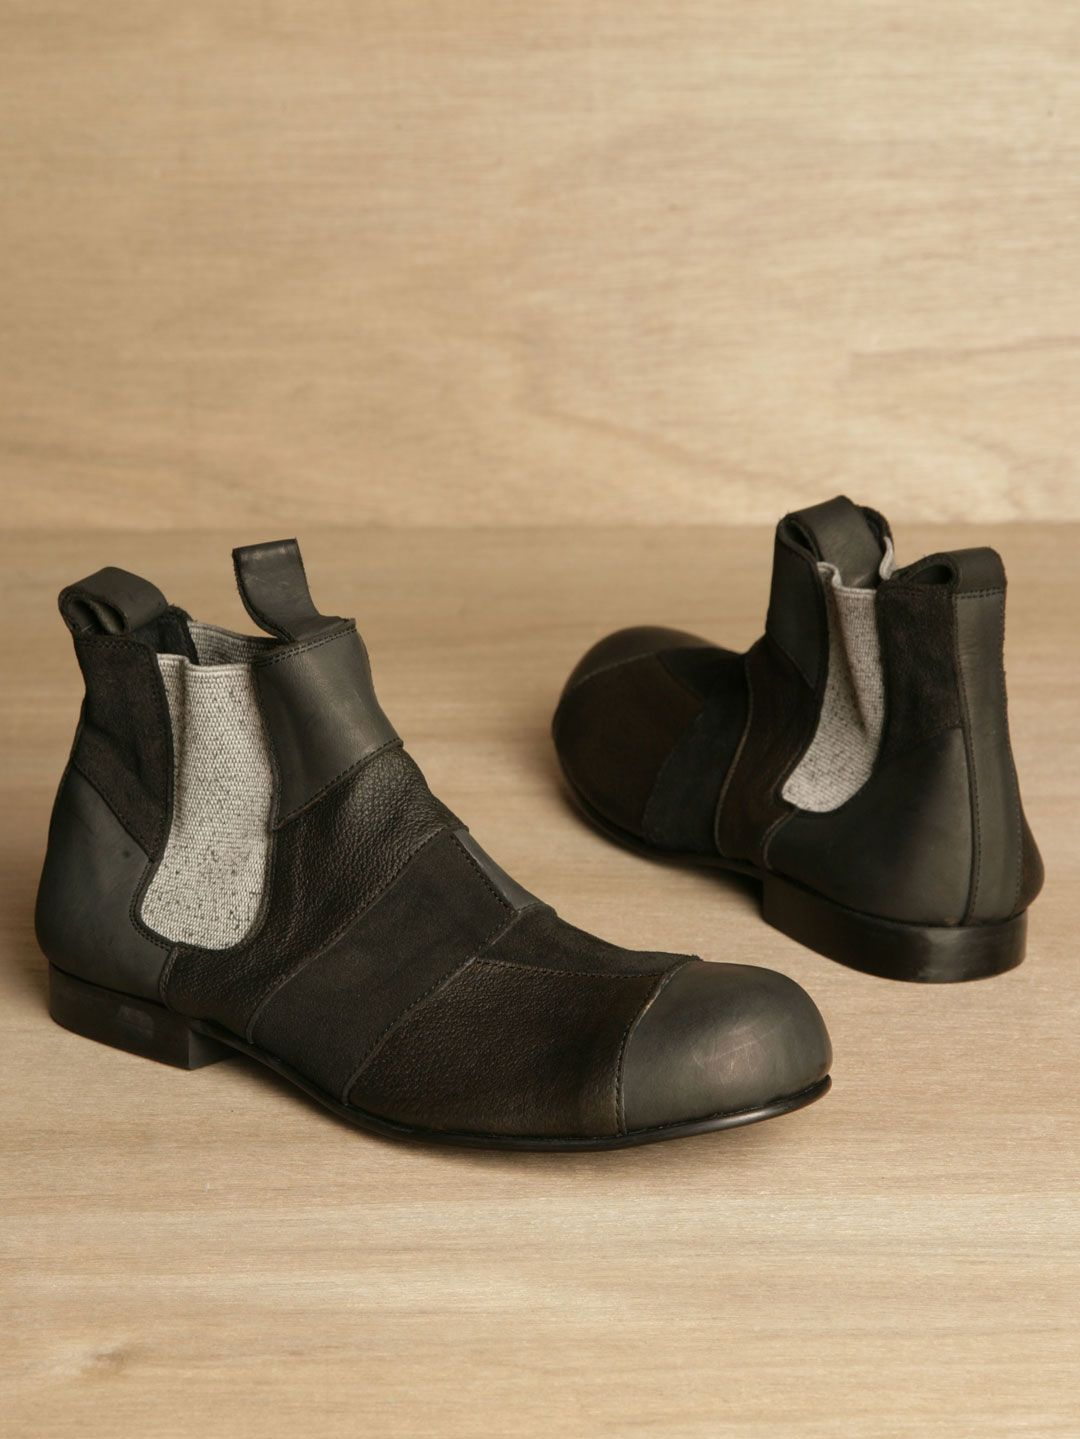 Comme des Gar?ons Homme Plus men's Patchwork Chelsea Boots from A/W 11  collection in